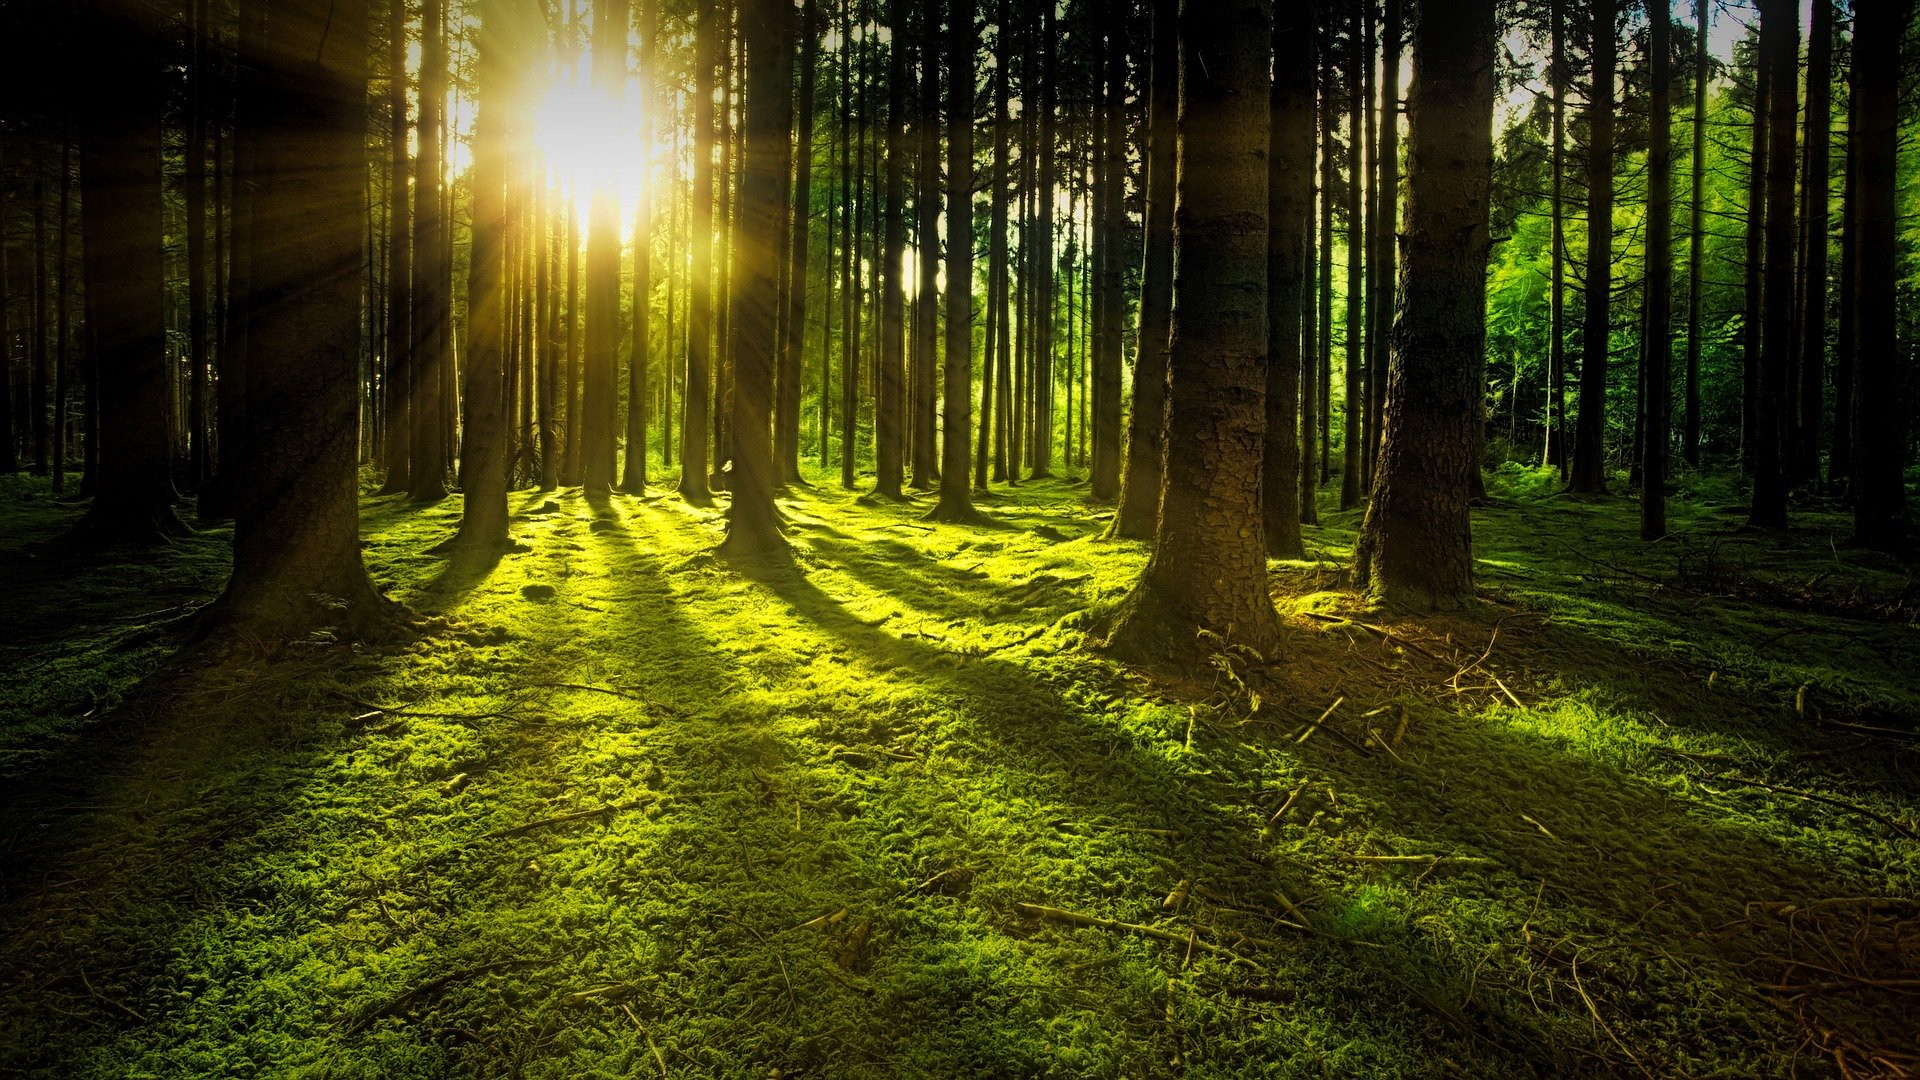 Sun appearing through a forest of tress symbolizing a great and postive change in your life.